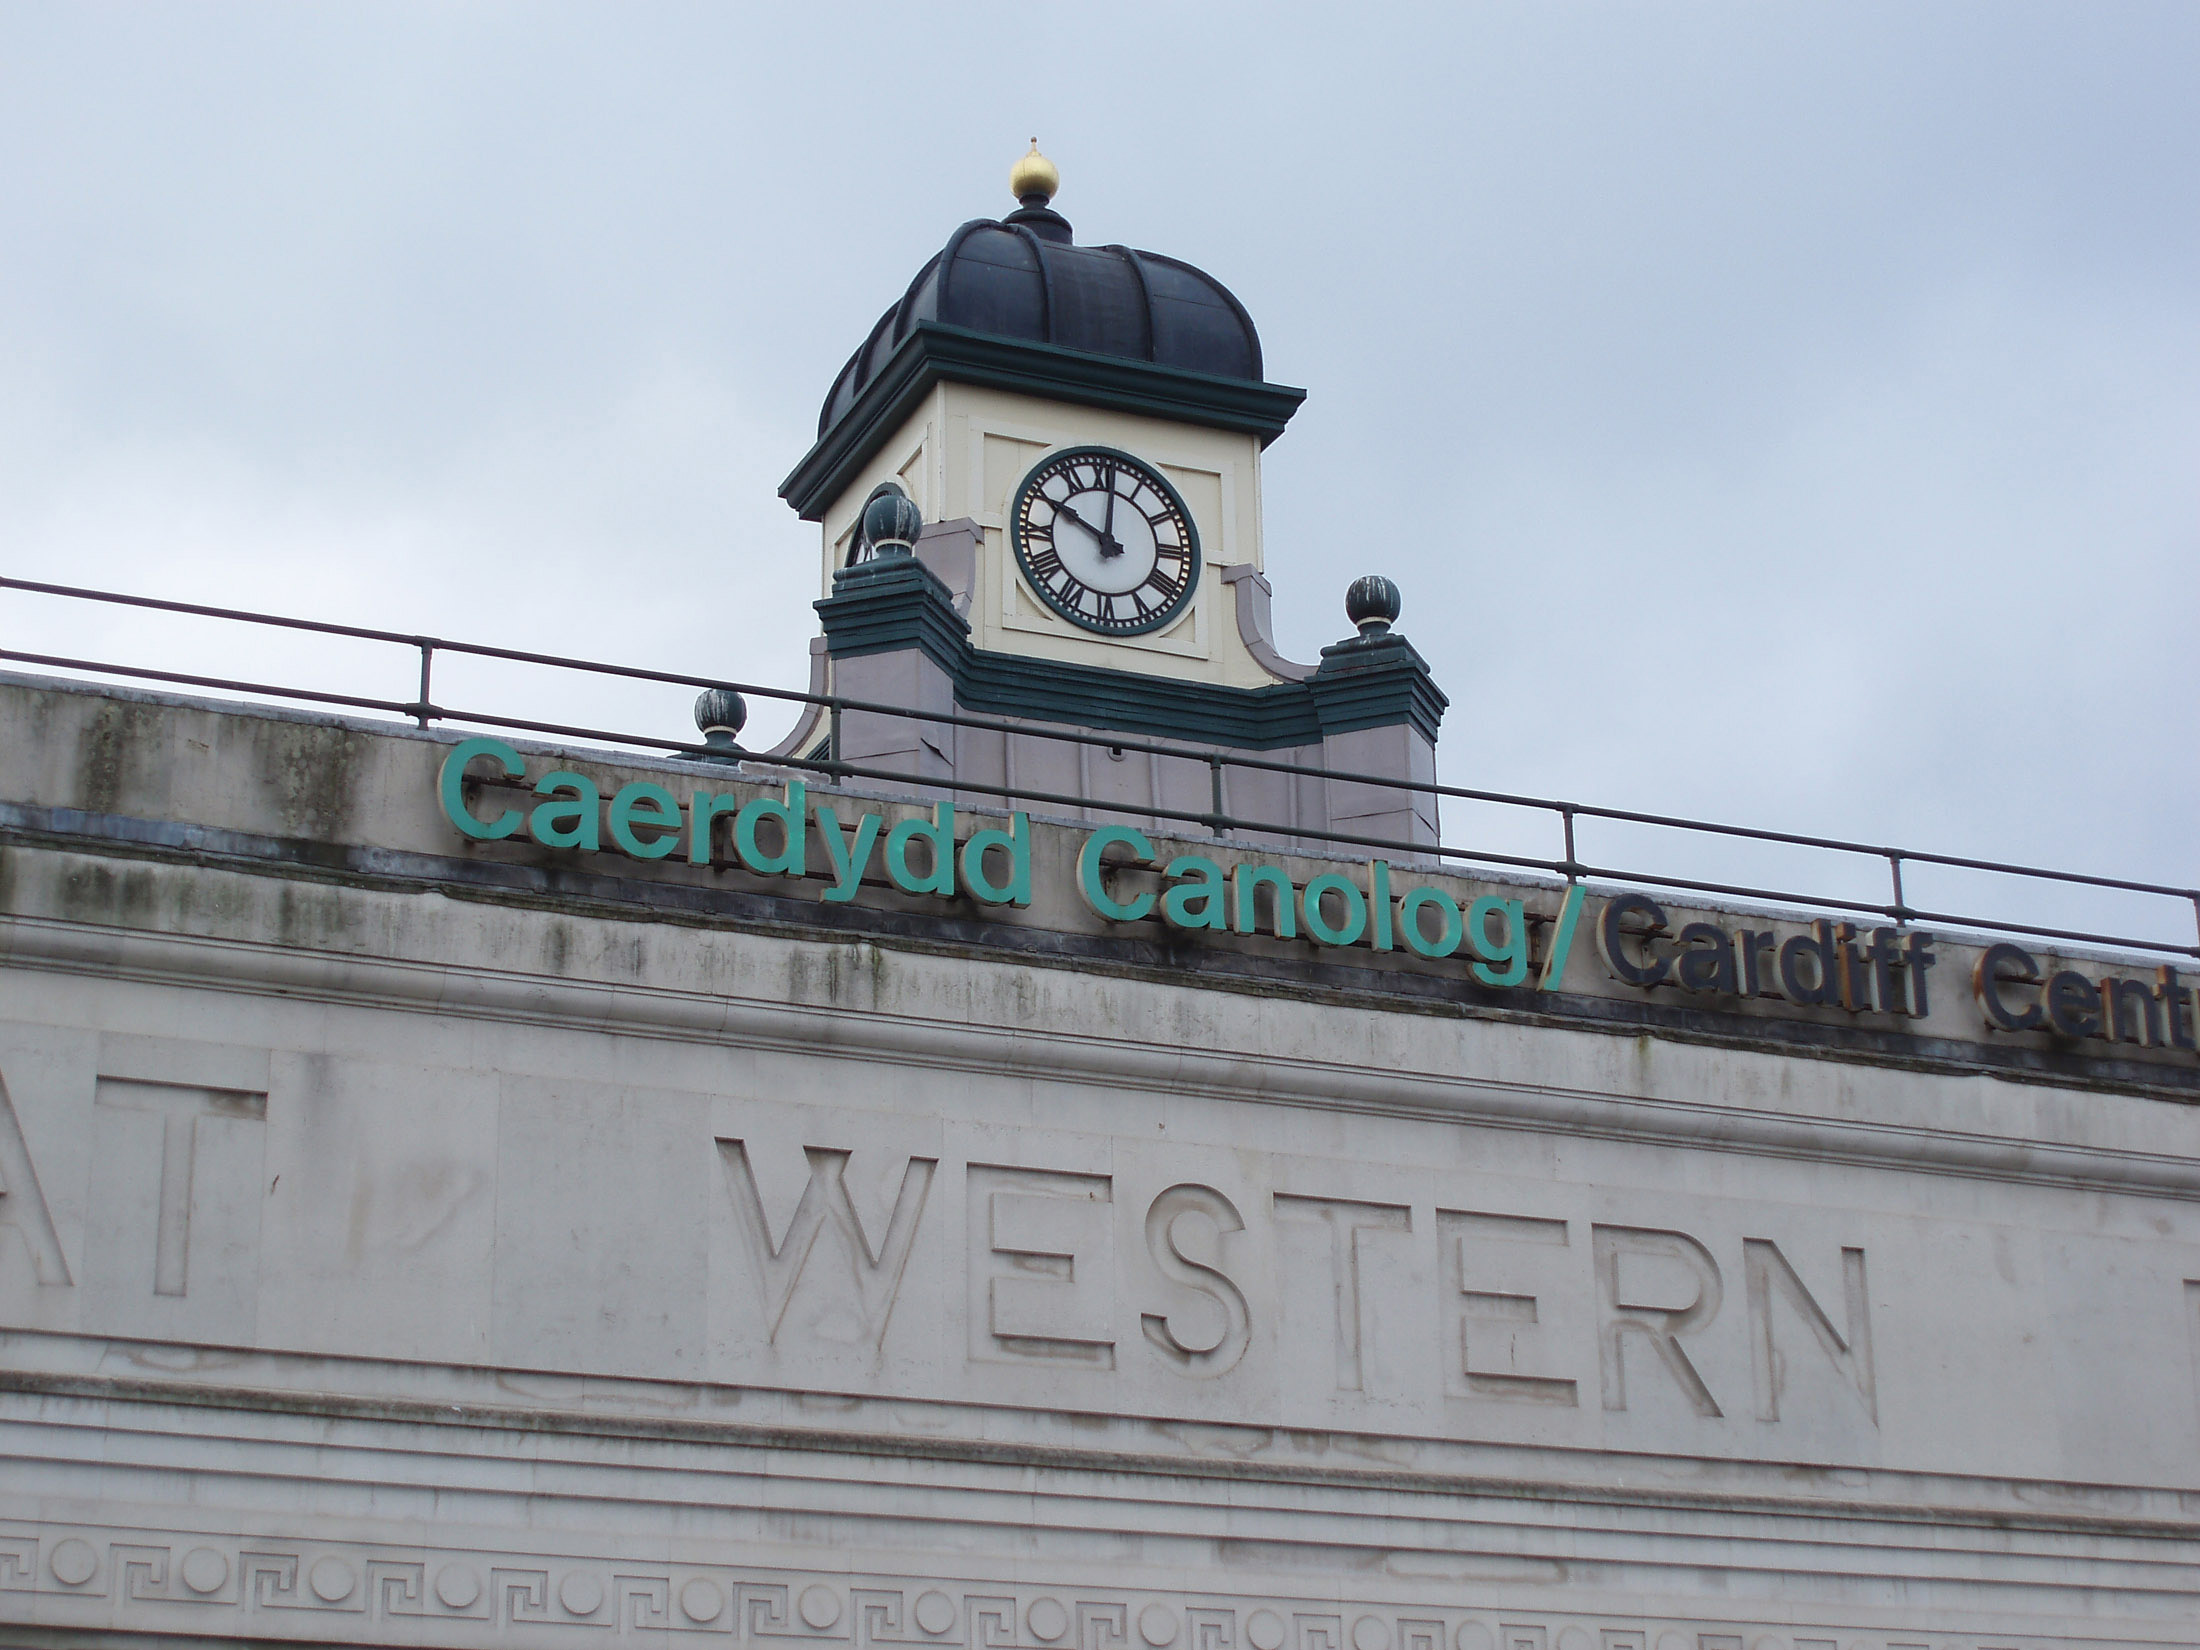 Old Clock on Top of the main Building with Carvings on the Wall at Cardiff Central Station, Wales.